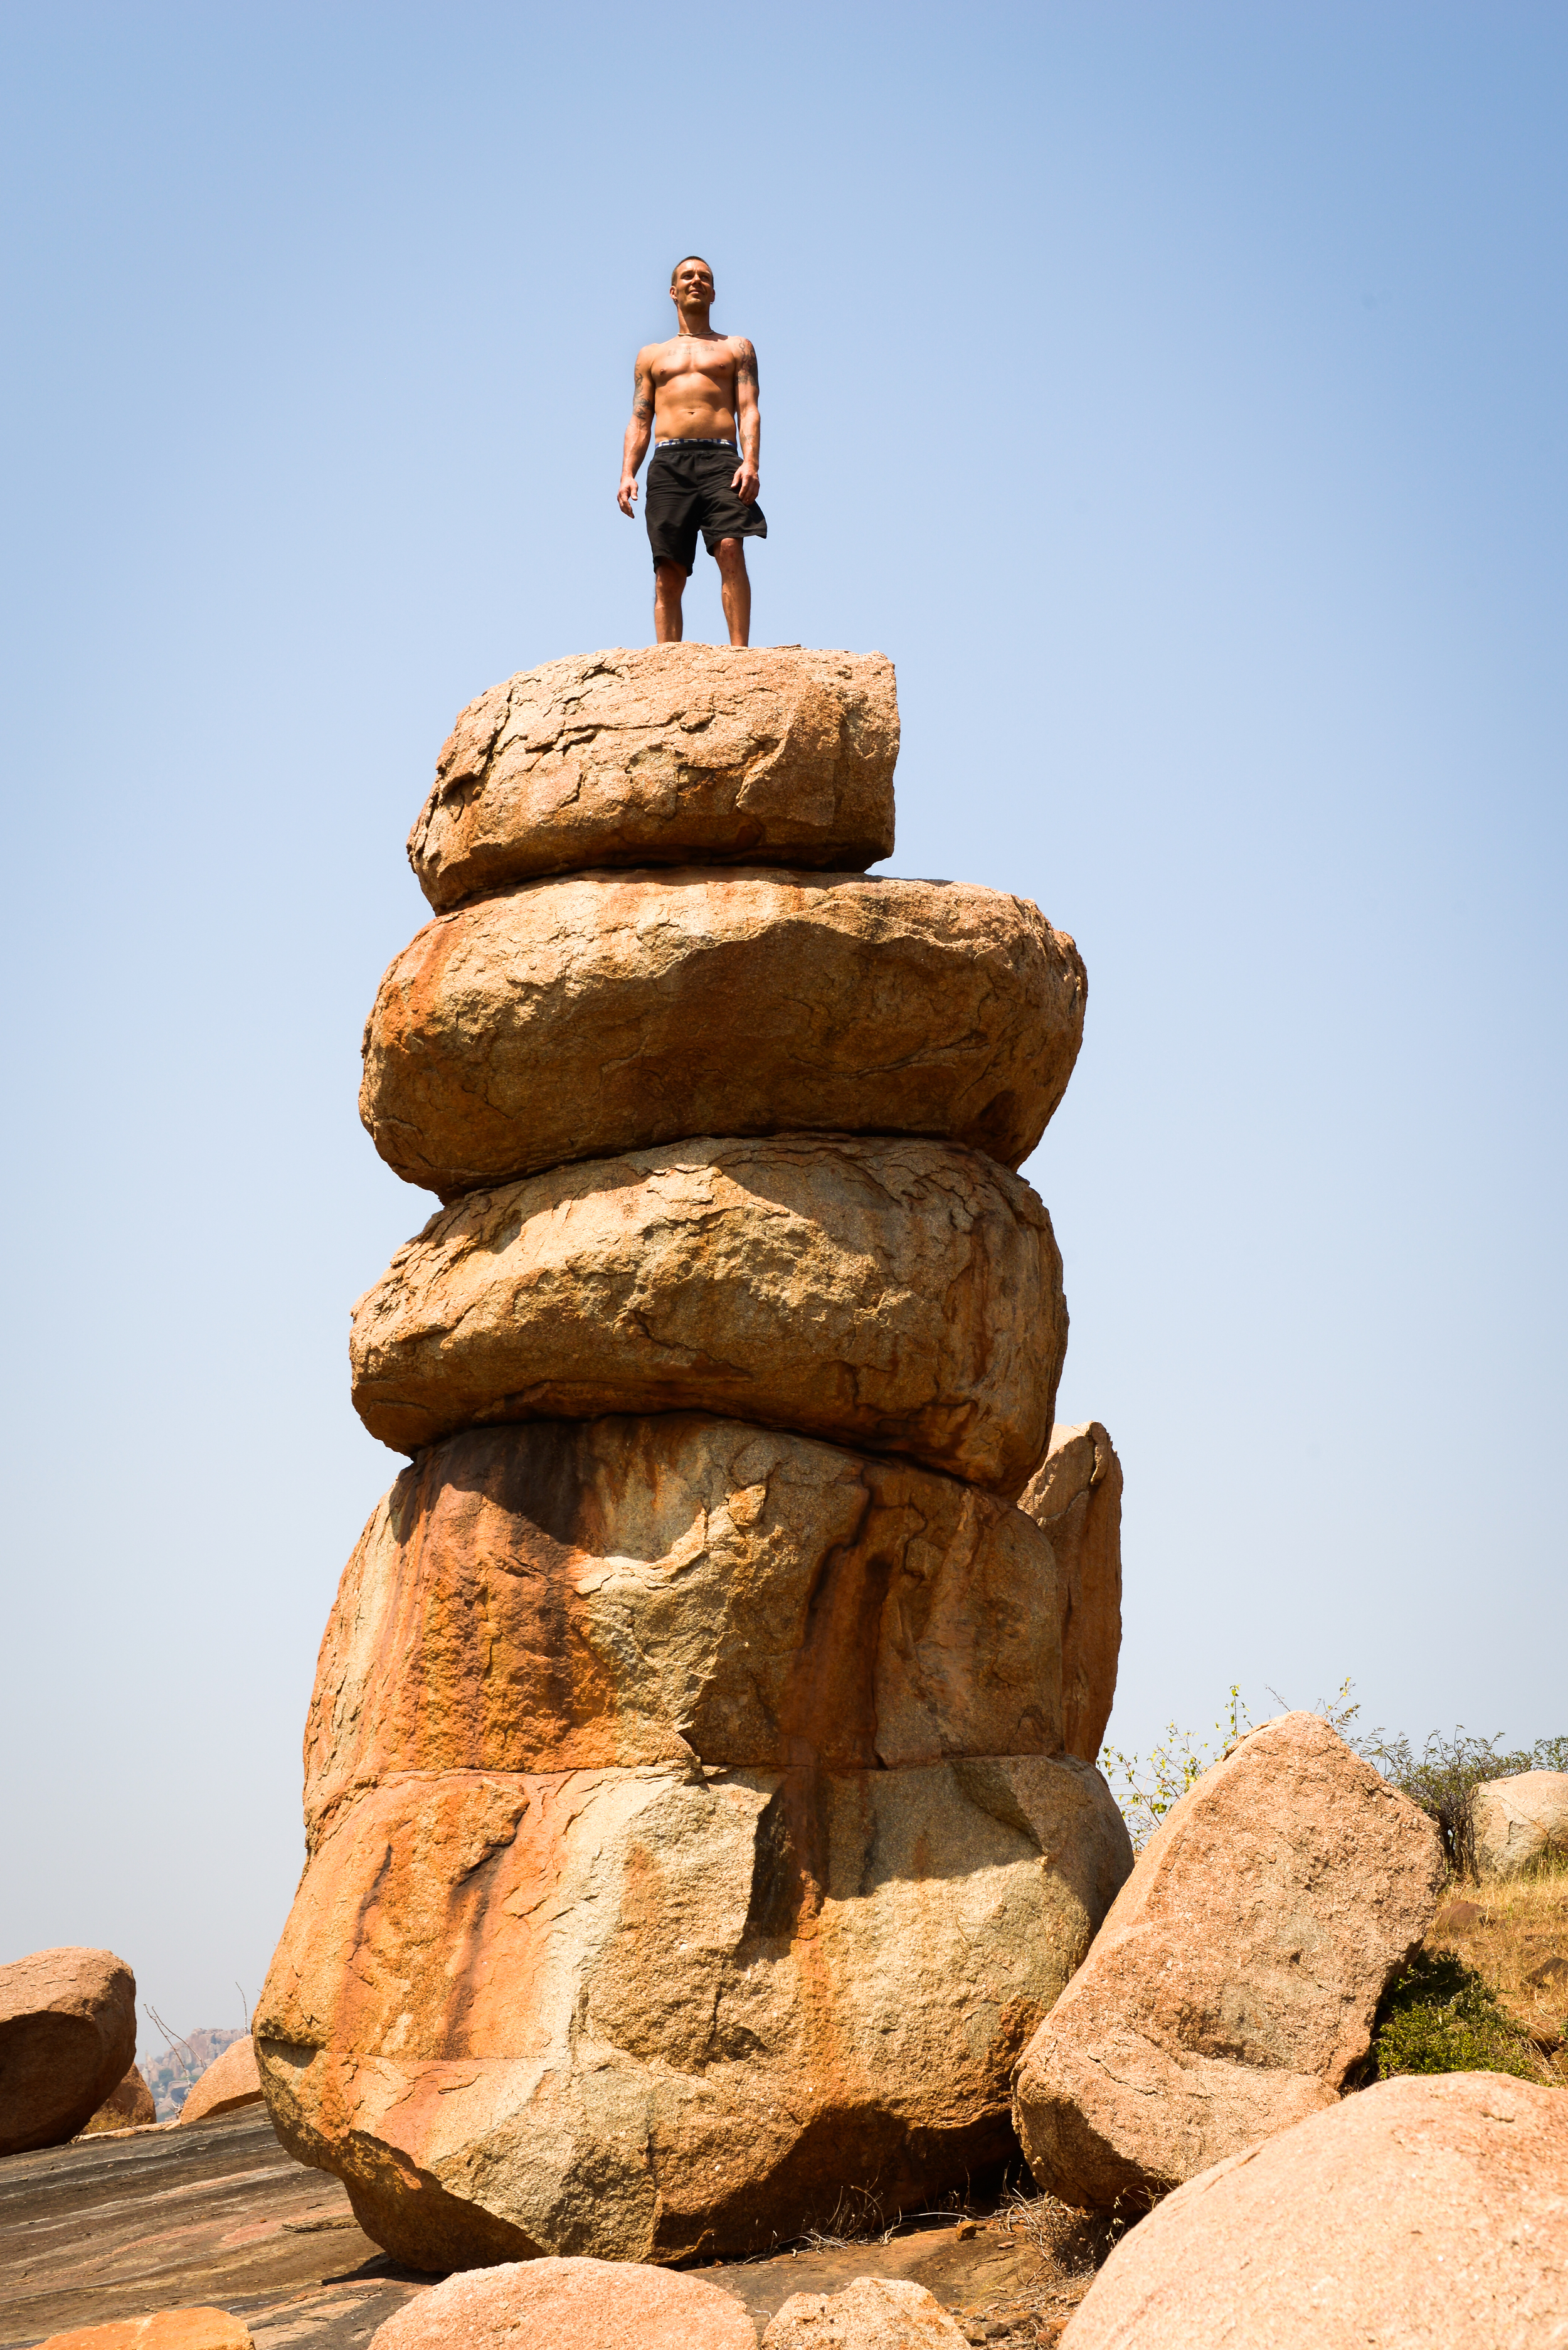 A climber stands a top of a stack of boulders - Hampi, India.